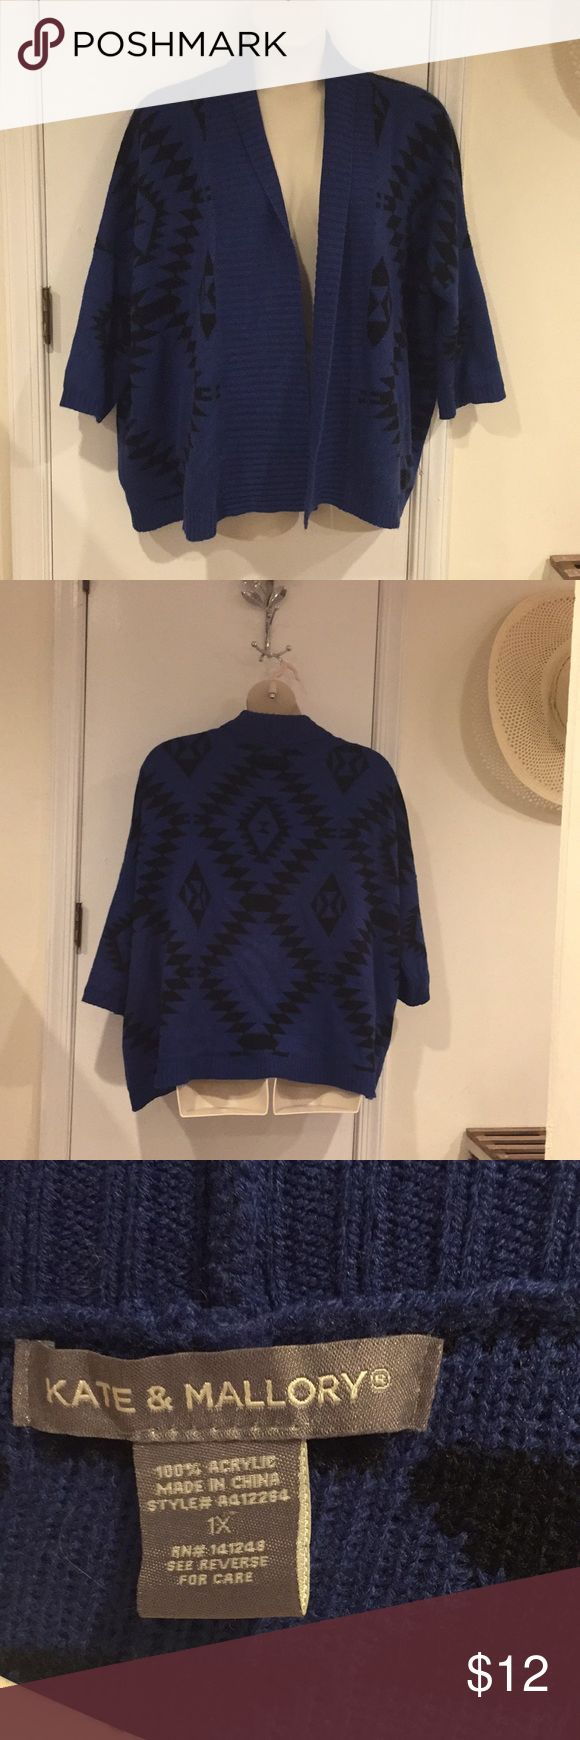 Blue tribal print open sweater Really cute tribal print sweater with 3/4 length sleeves. Great layering piece and very warm. Kate & Mallory Sweaters Cardigans